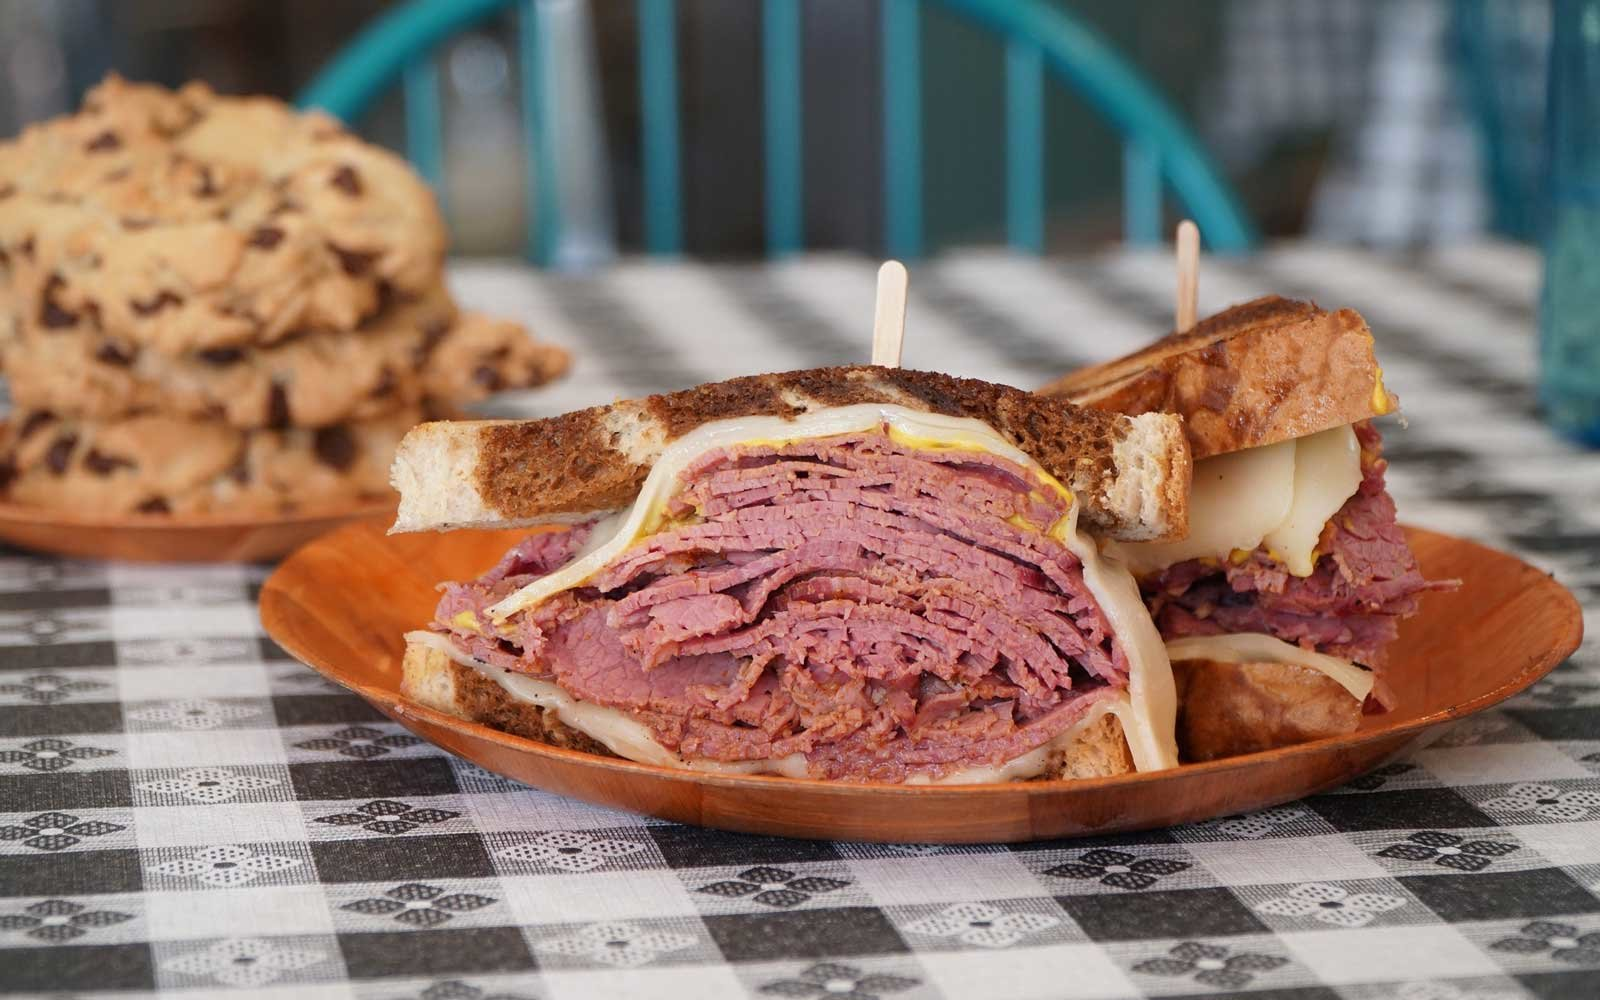 Pastrami Sandwich at Not Your Typical Deli in Gilbert Arizona